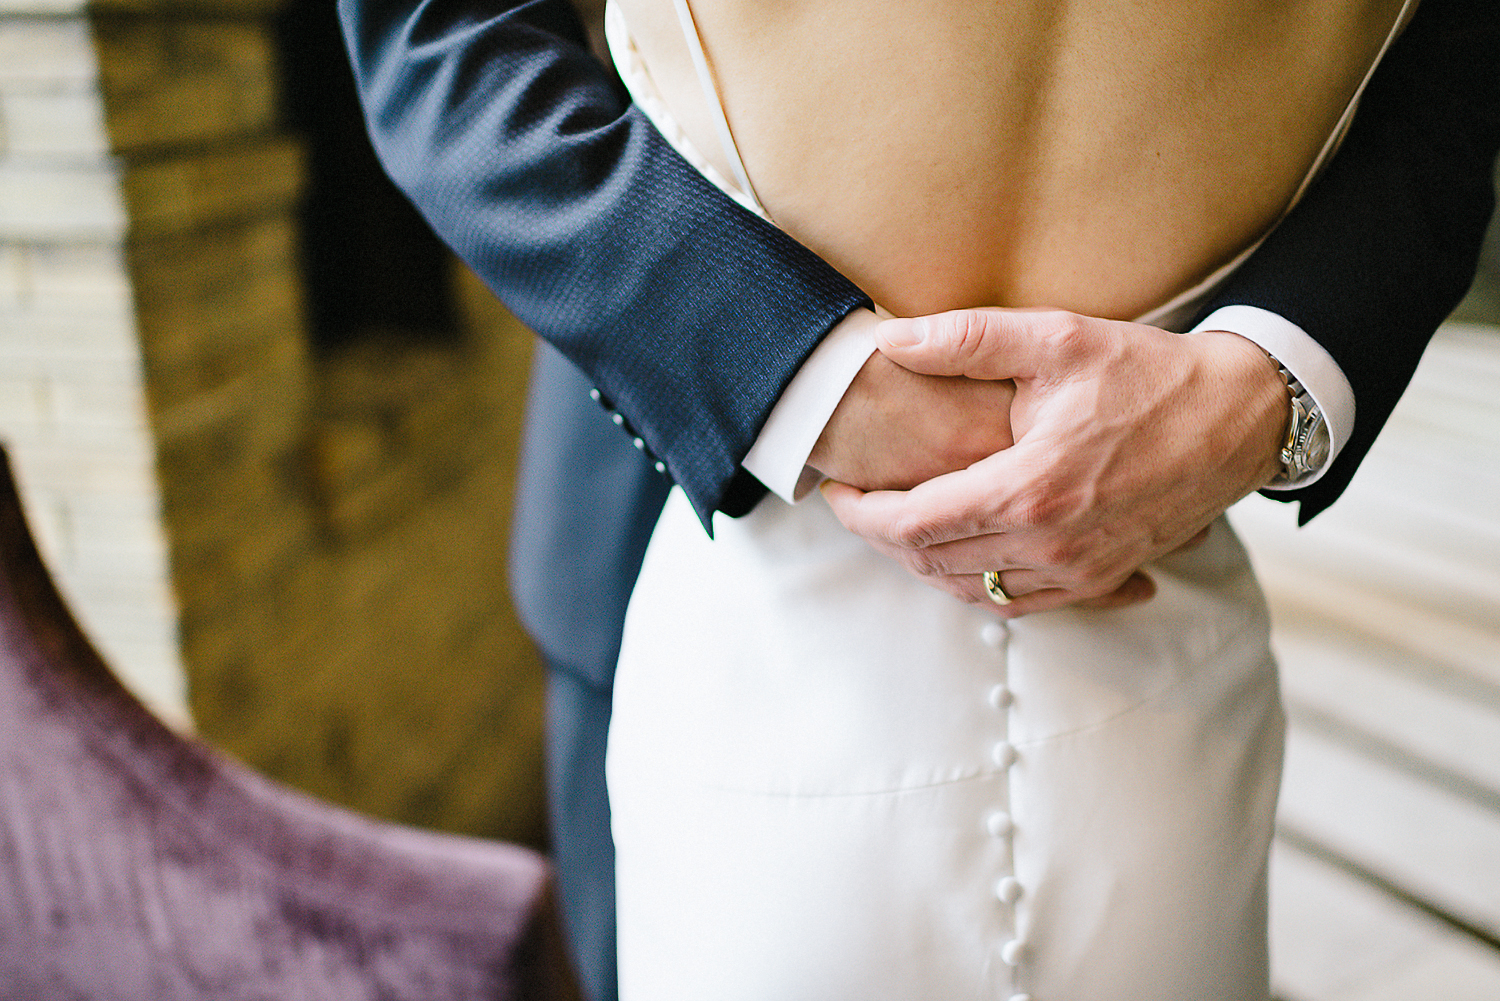 Best-Wedding-Photographers-Toronto_-Urban-City-Wedding-Photography-Downtown-Toronto-Photographer_Vintage-Bride-and-Groom-Details_The-Chase-Wedding-Venue_Candid-Photojournalistic-Documentary-Reception-Hands-Holding.jpg